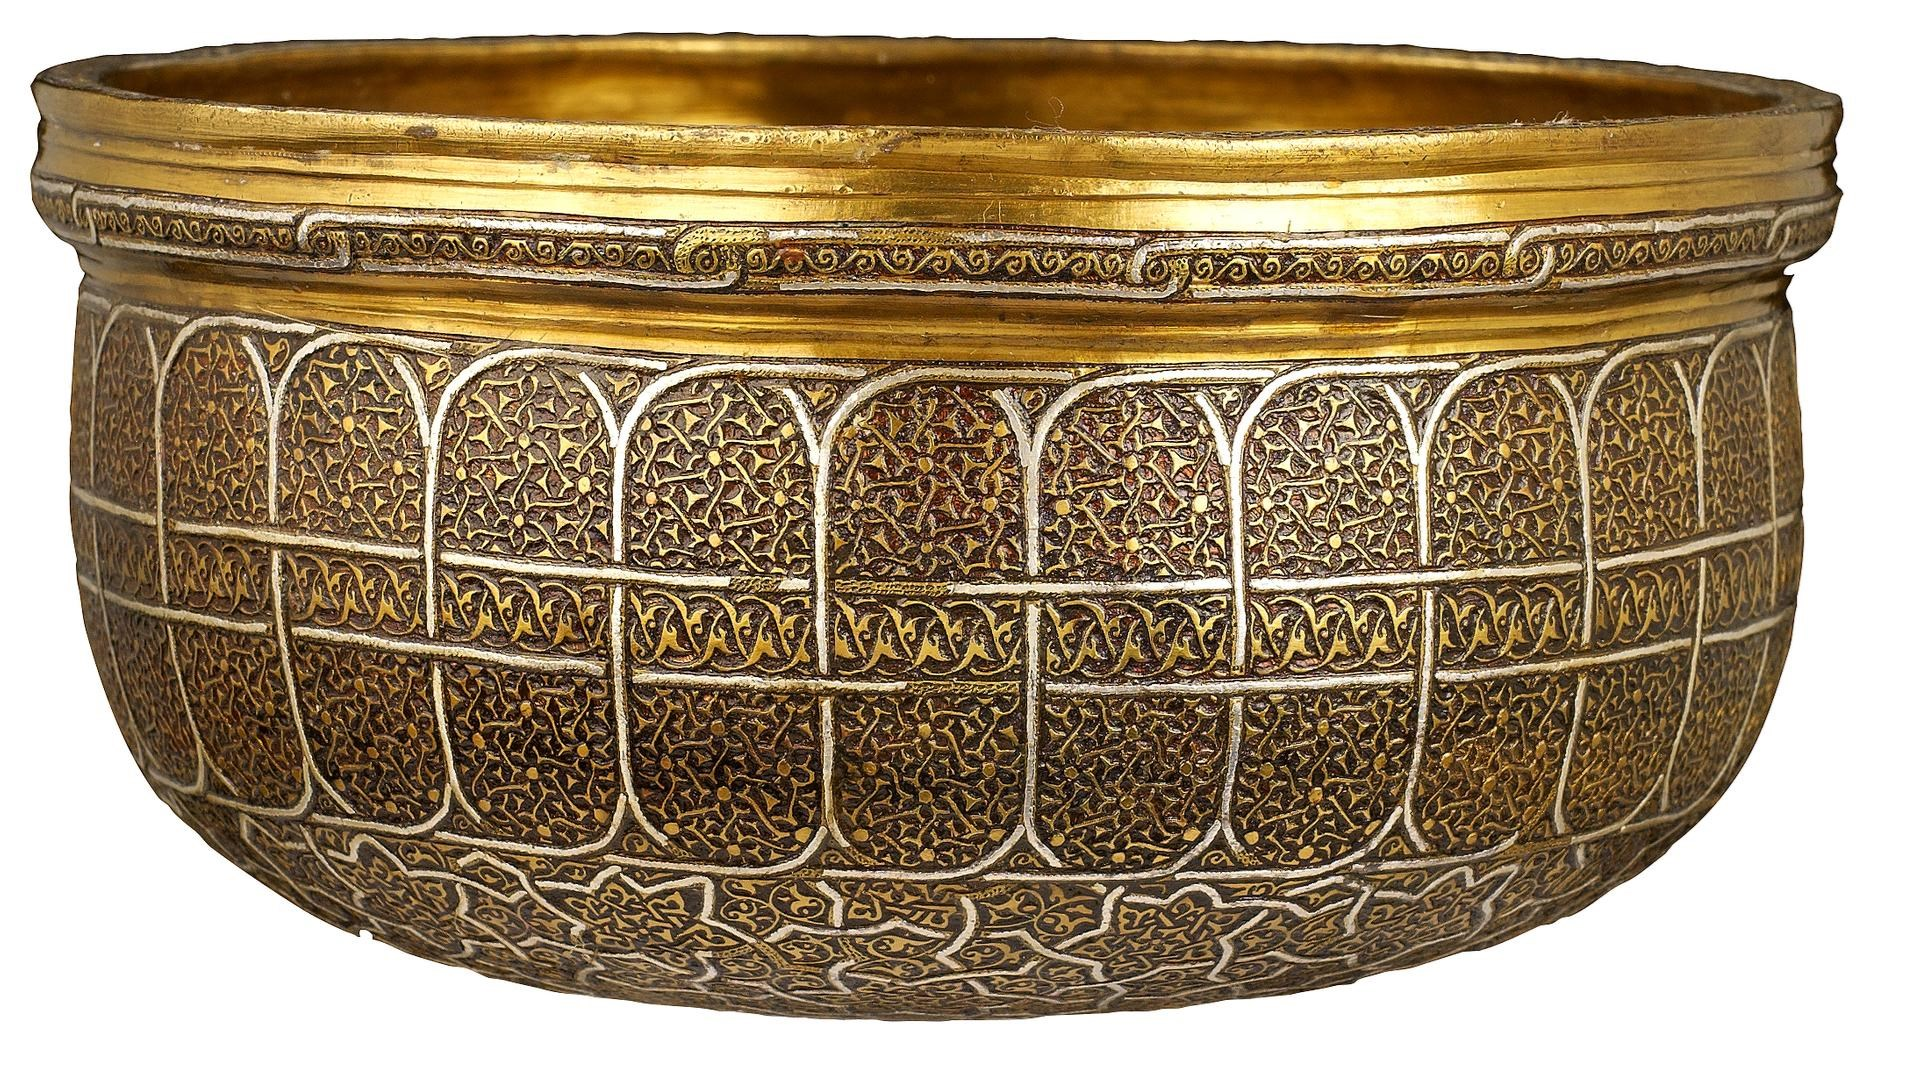 Silver inlaid brass bowl-shaped box with cover by Iranian or Turkish